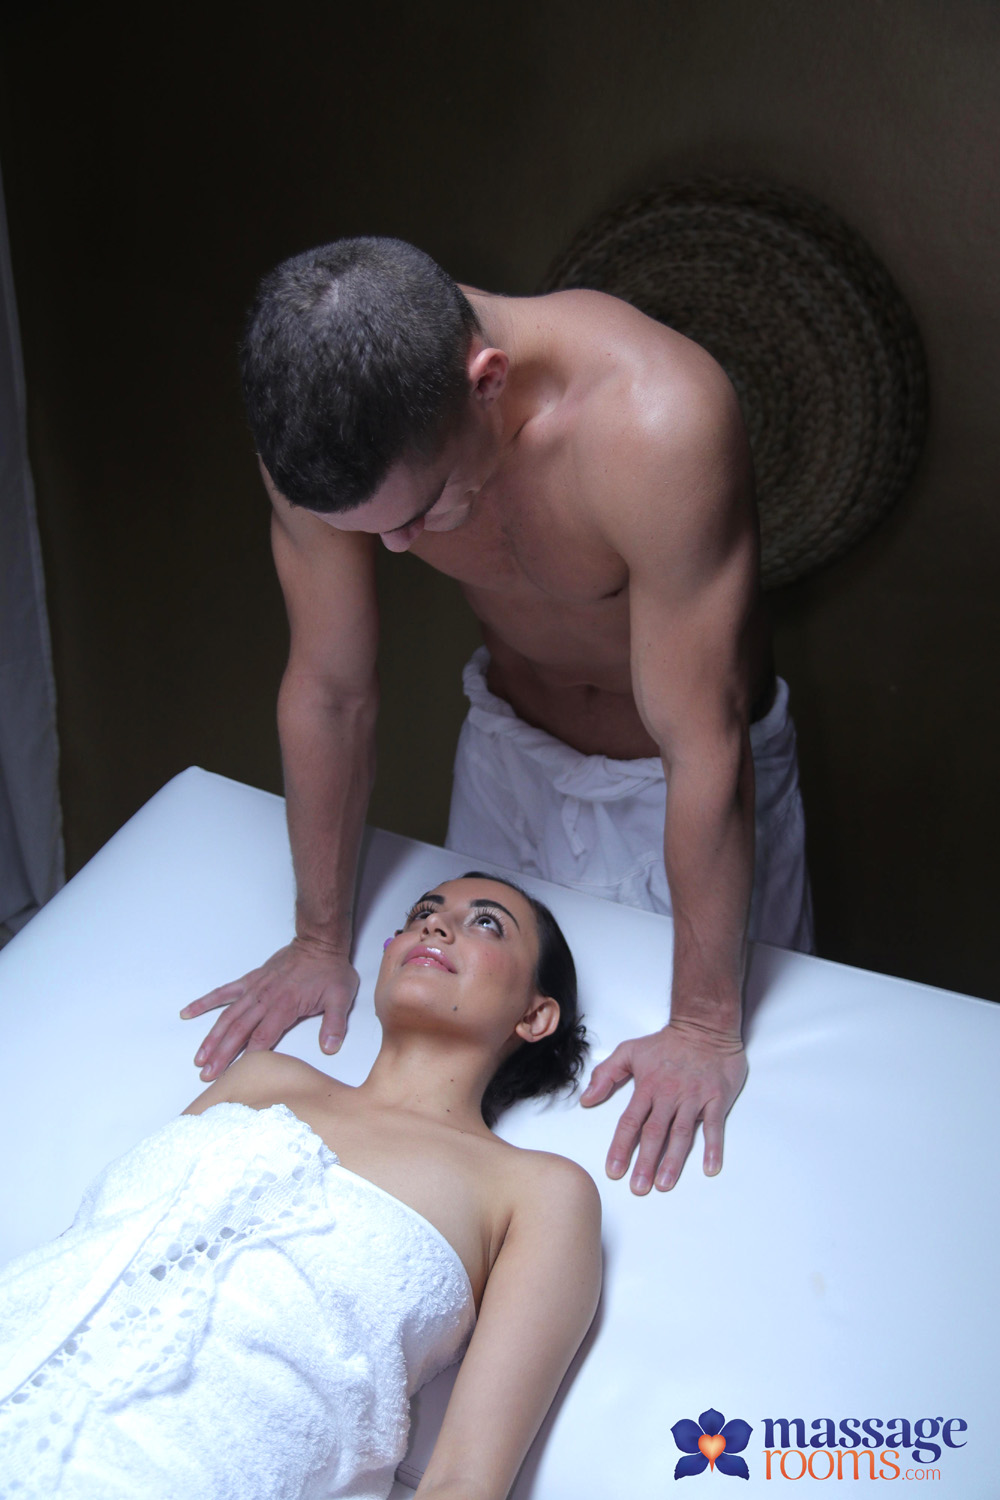 Massage Rooms Porn Videos Free Sex  xHamster